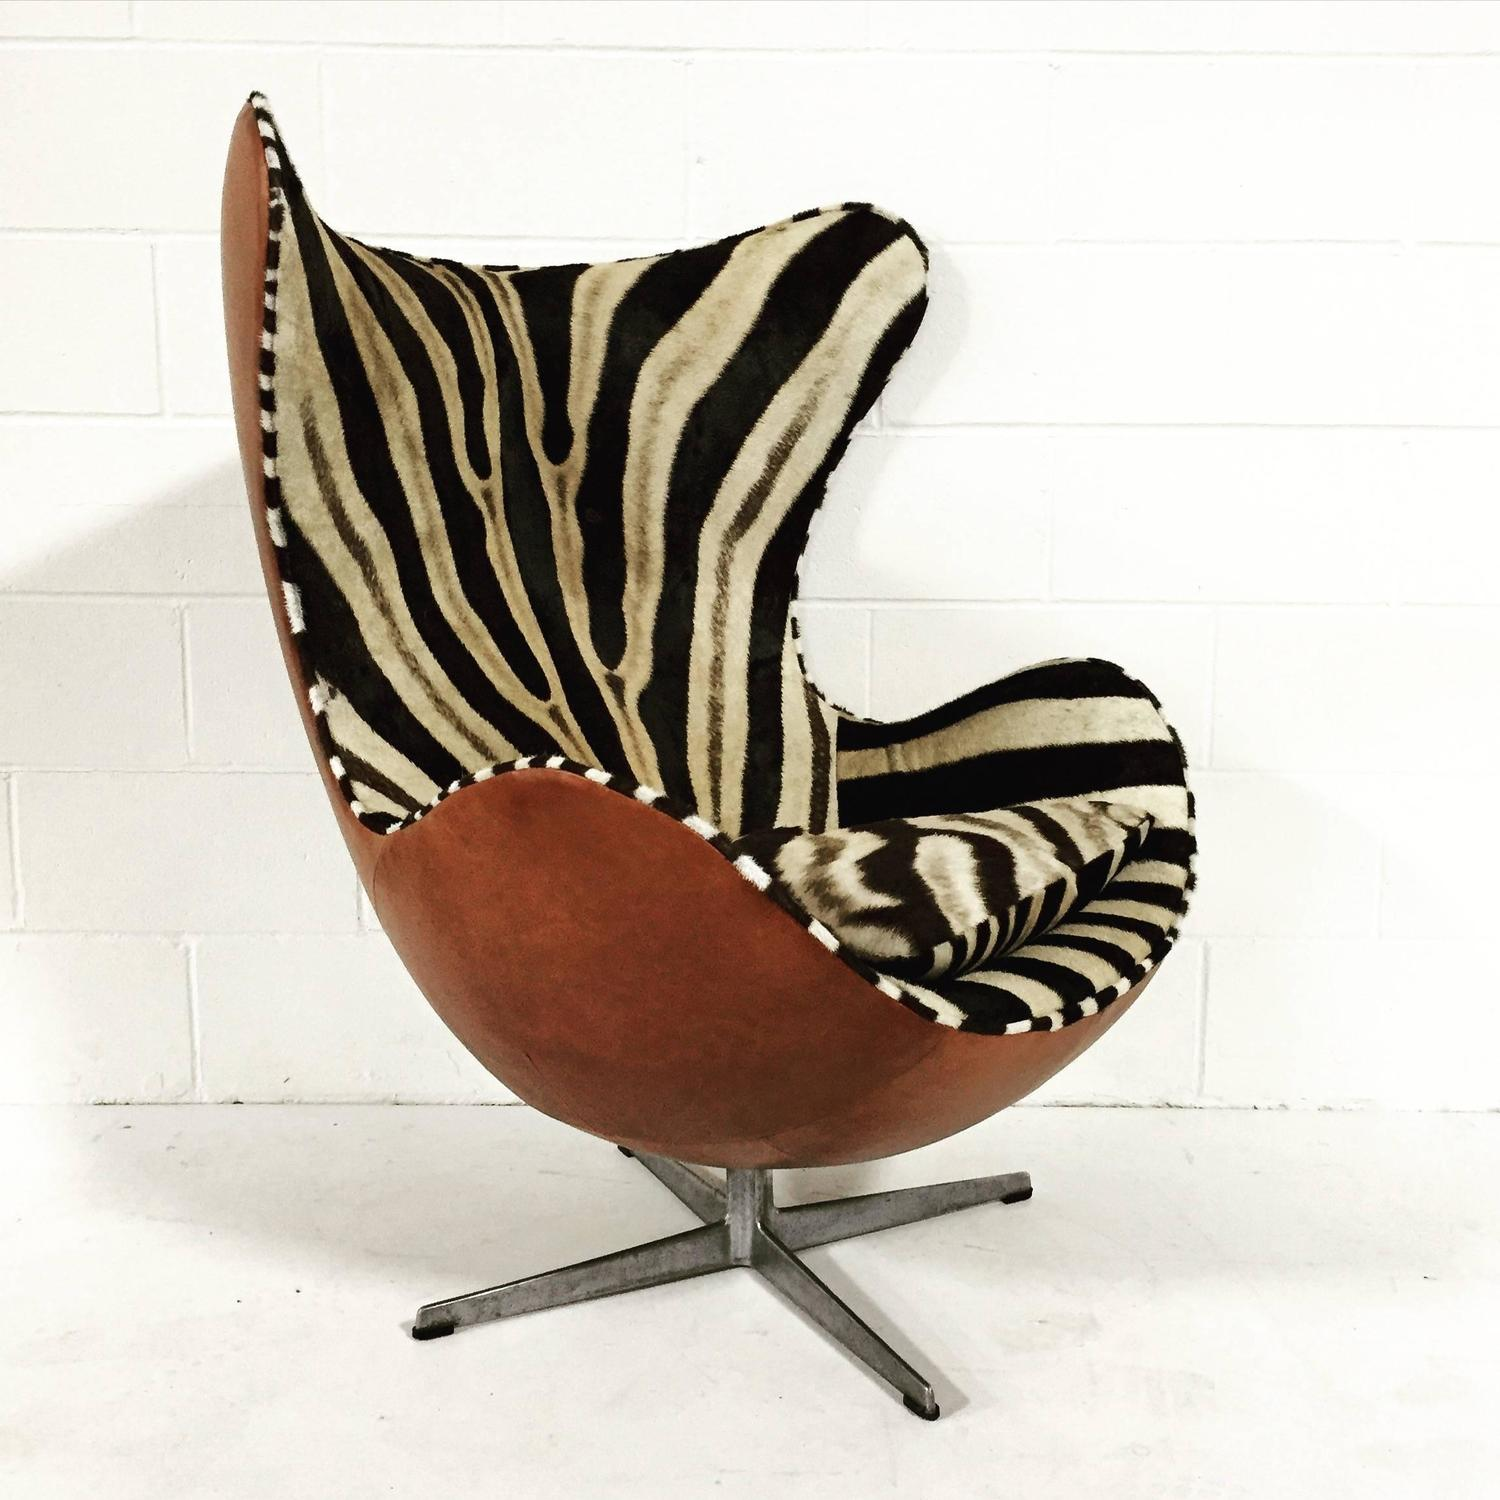 tattooing chairs for sale pello ikea chair zebra skin